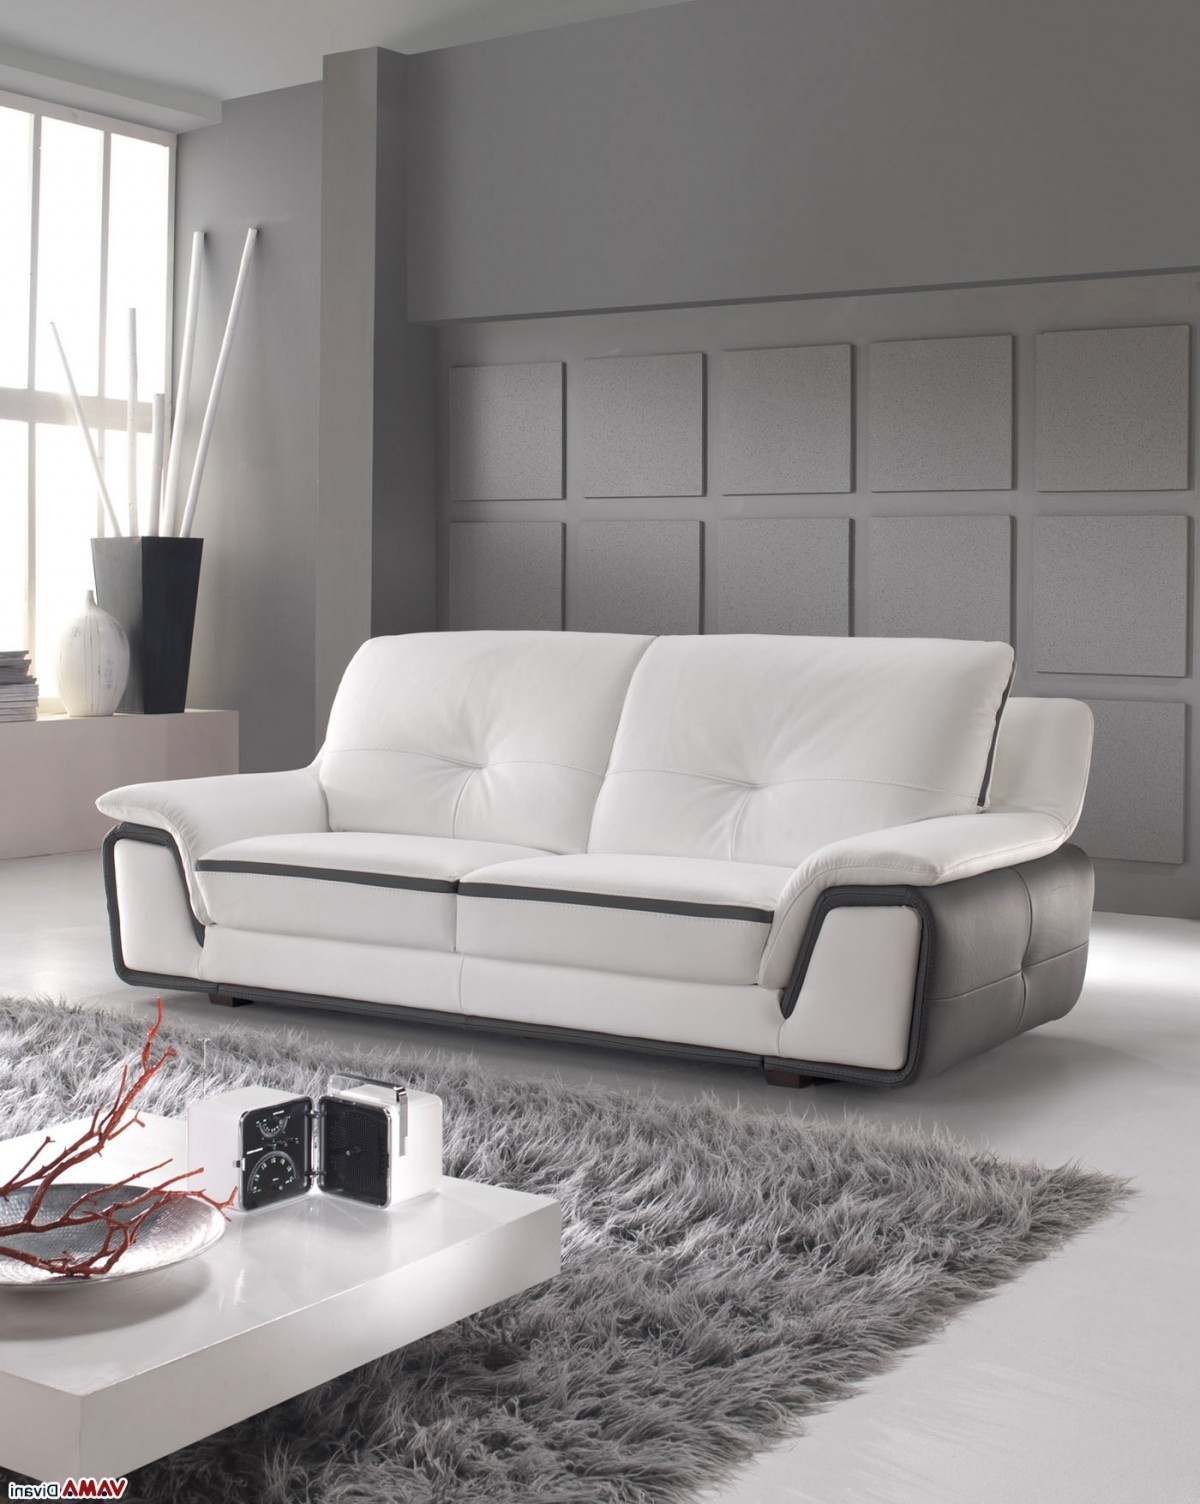 Modern 3 Seater Sofas Inside Most Current Contemporary Sofa In White And Grey Genuine Leather (View 13 of 20)